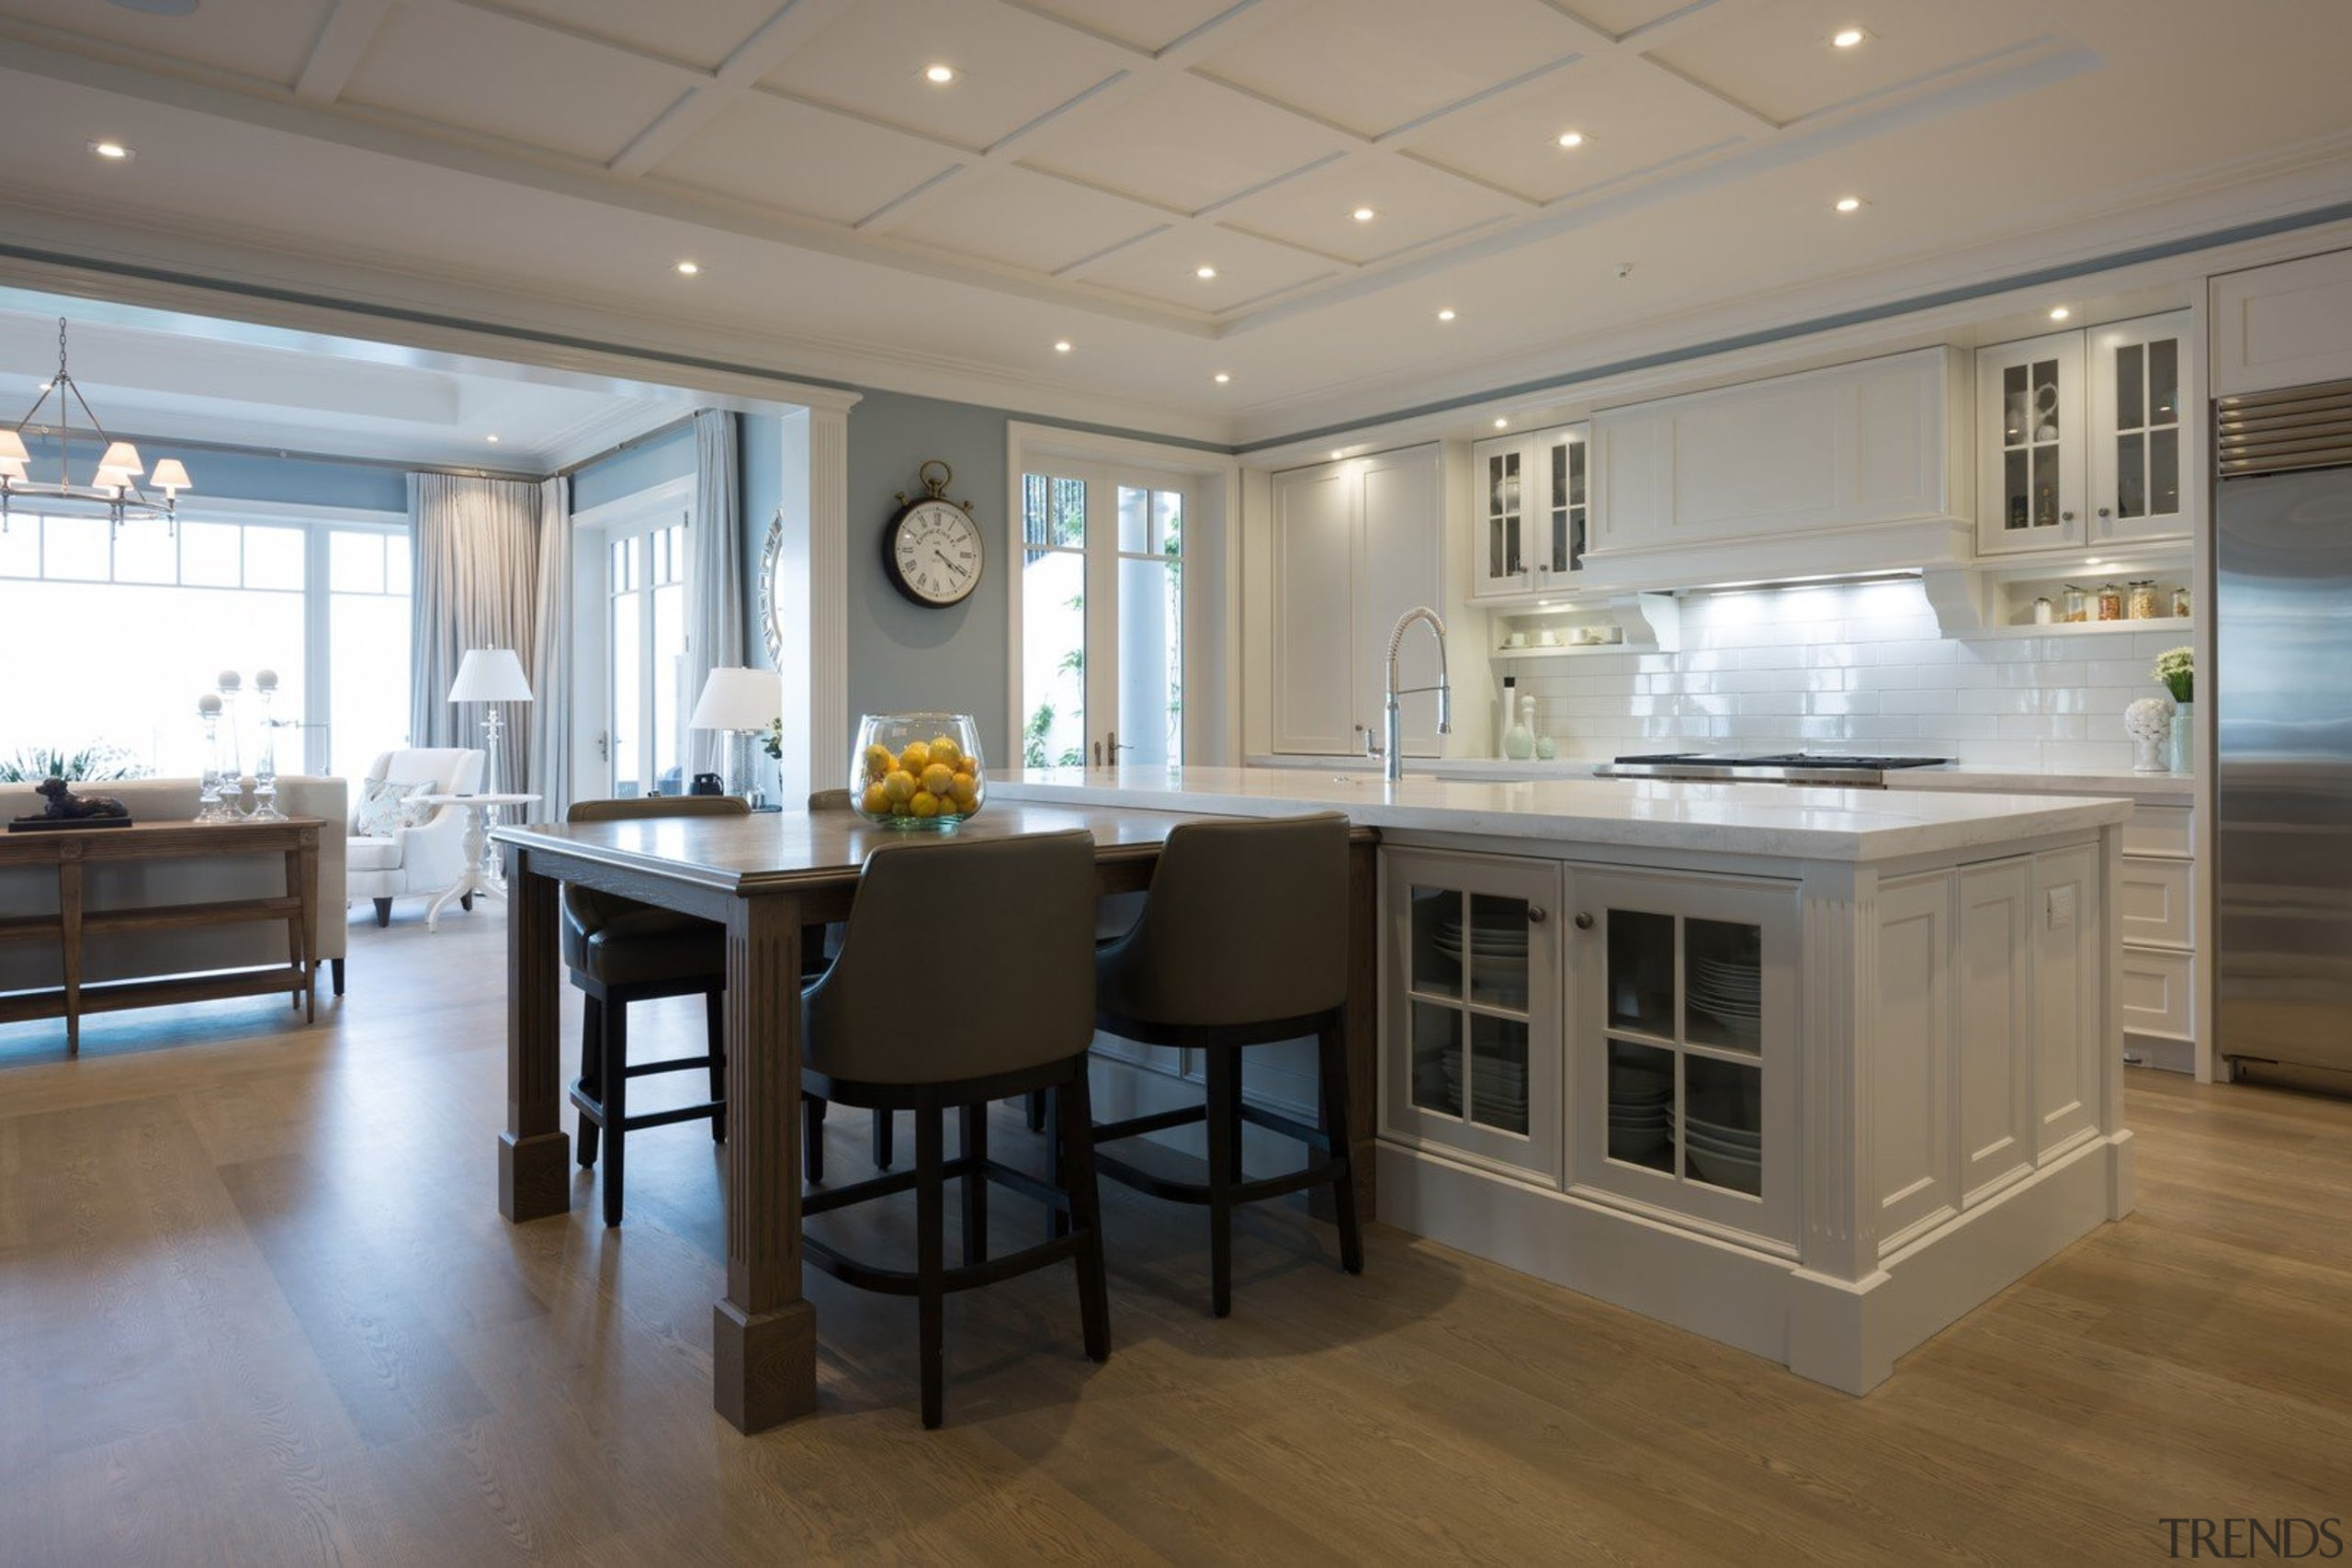 Living area - Living area - cabinetry | cabinetry, countertop, cuisine classique, floor, flooring, interior design, kitchen, real estate, room, gray